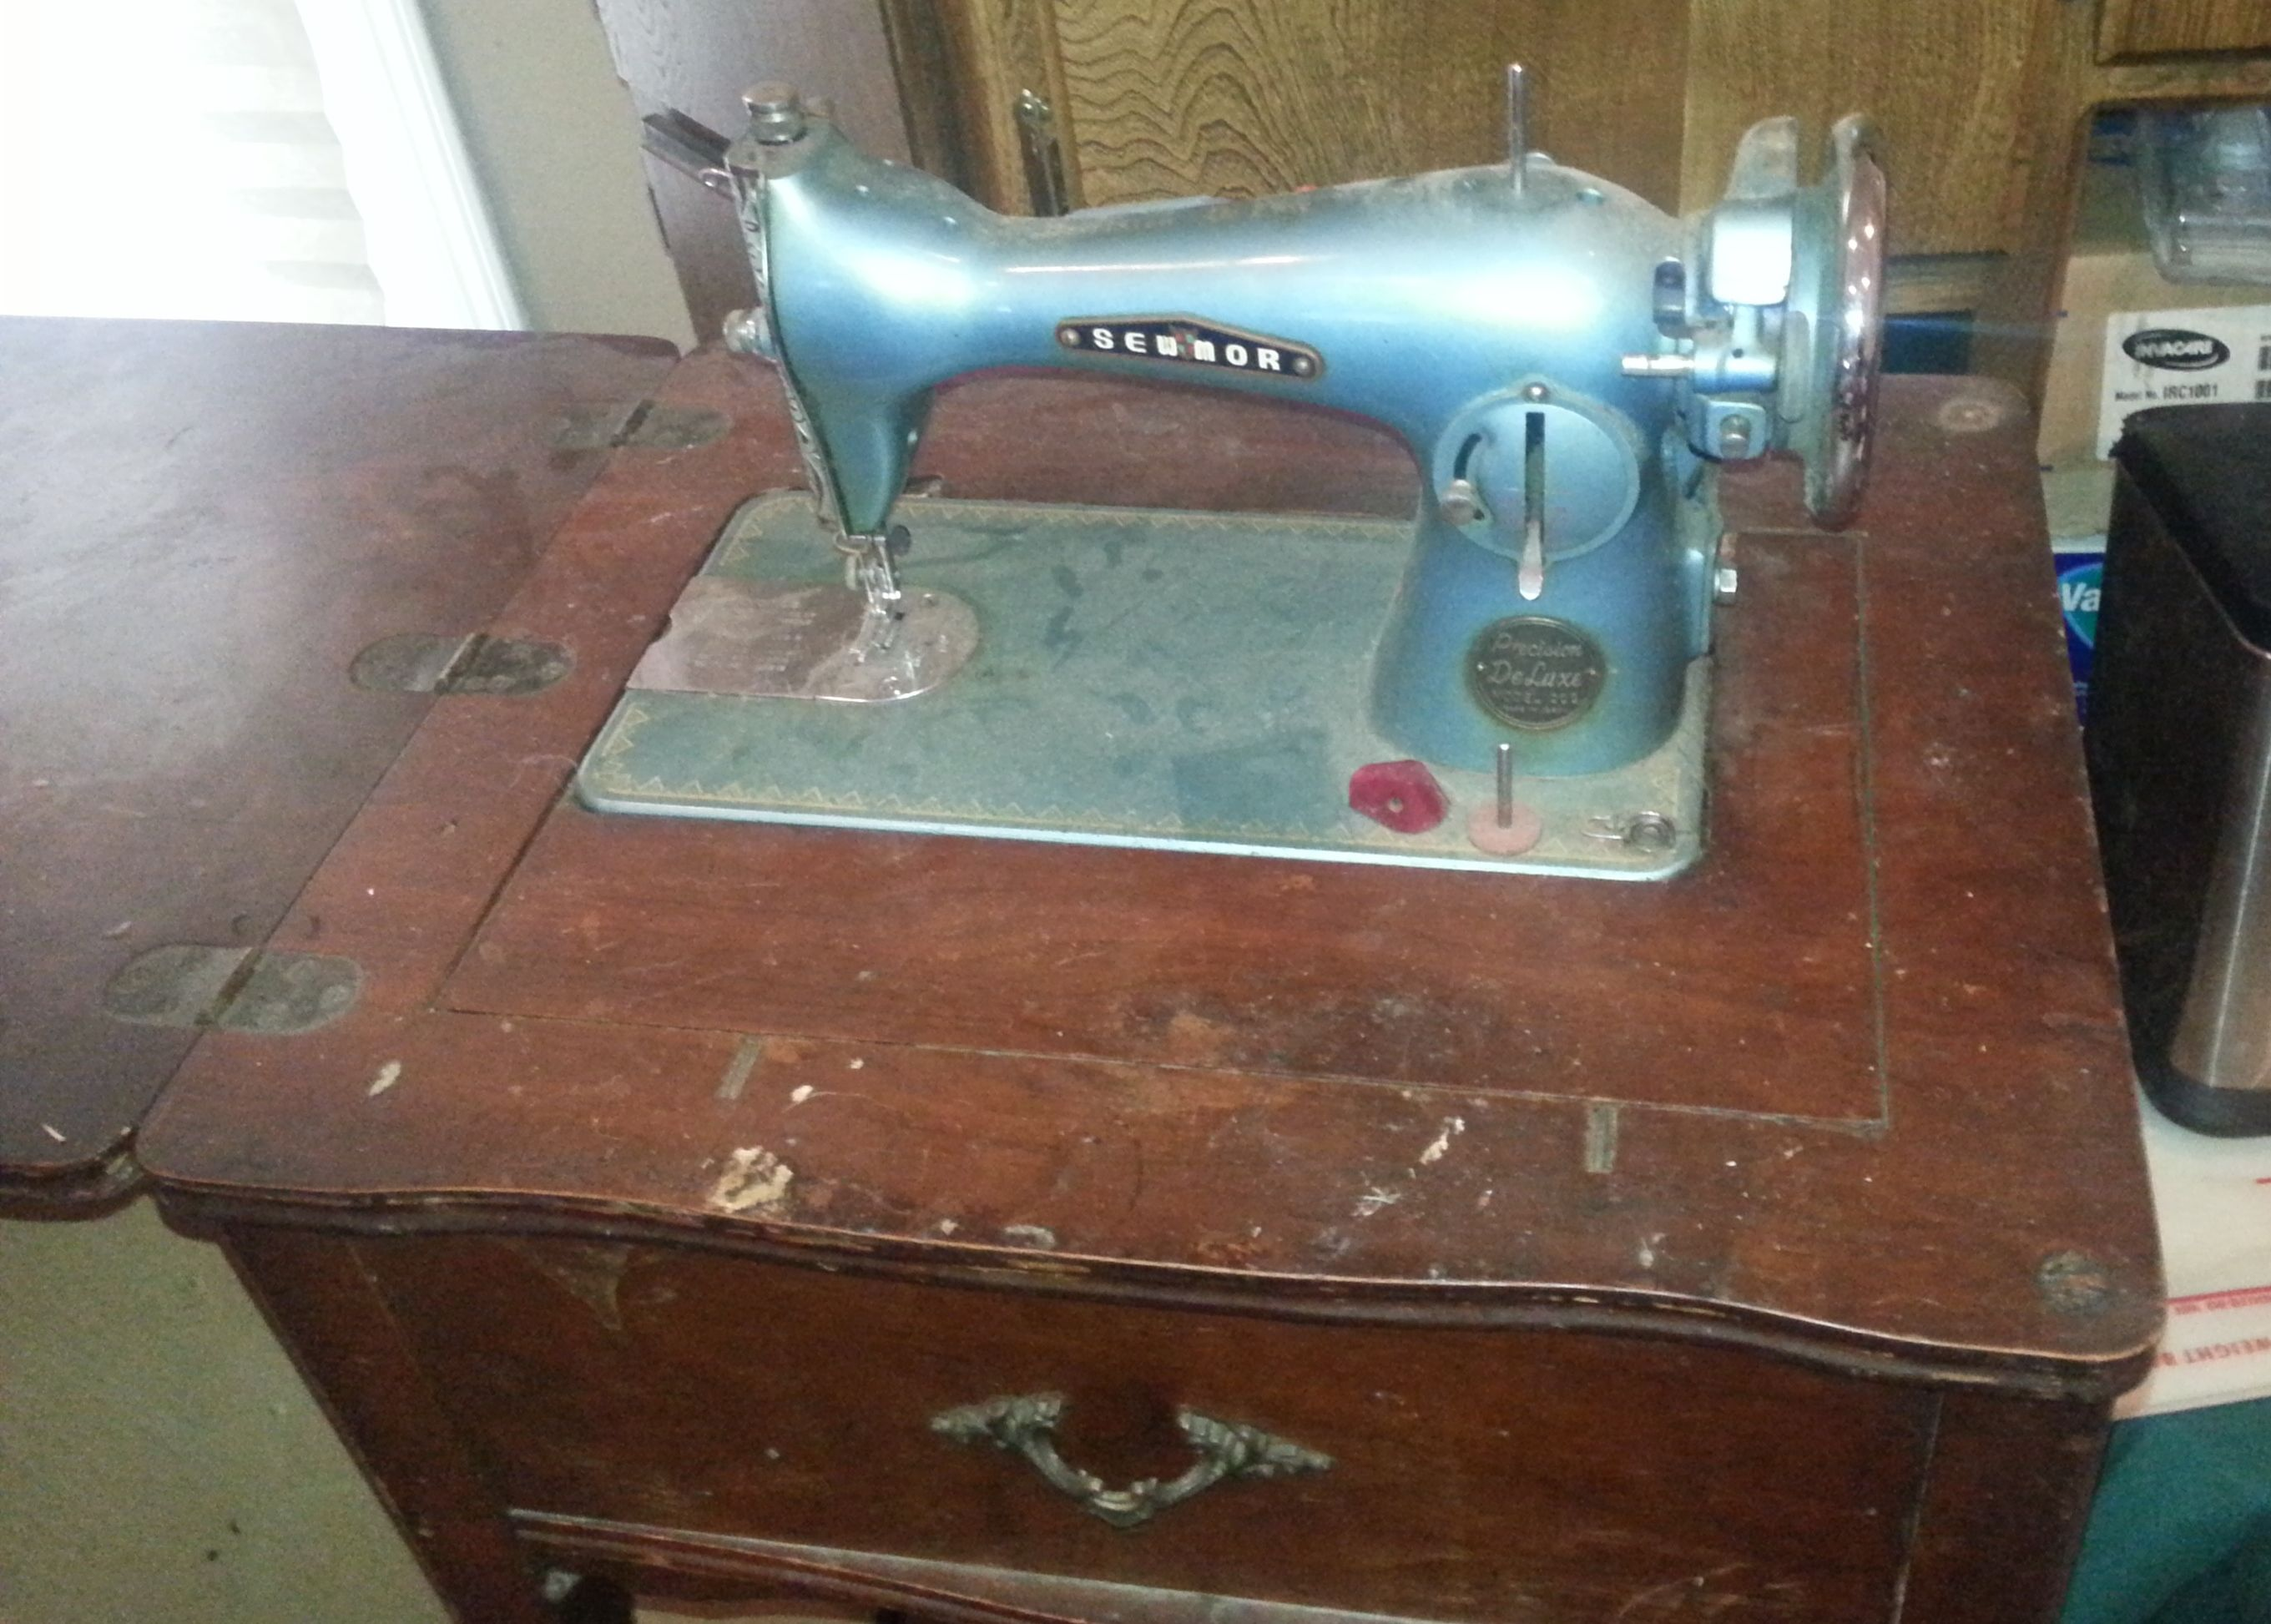 Evrything4sales garage models sewing machines and tyxgb76ajthis precision deluxe antique sewing machine model 202 with wood c in evrything4sales garage sale sciox Gallery